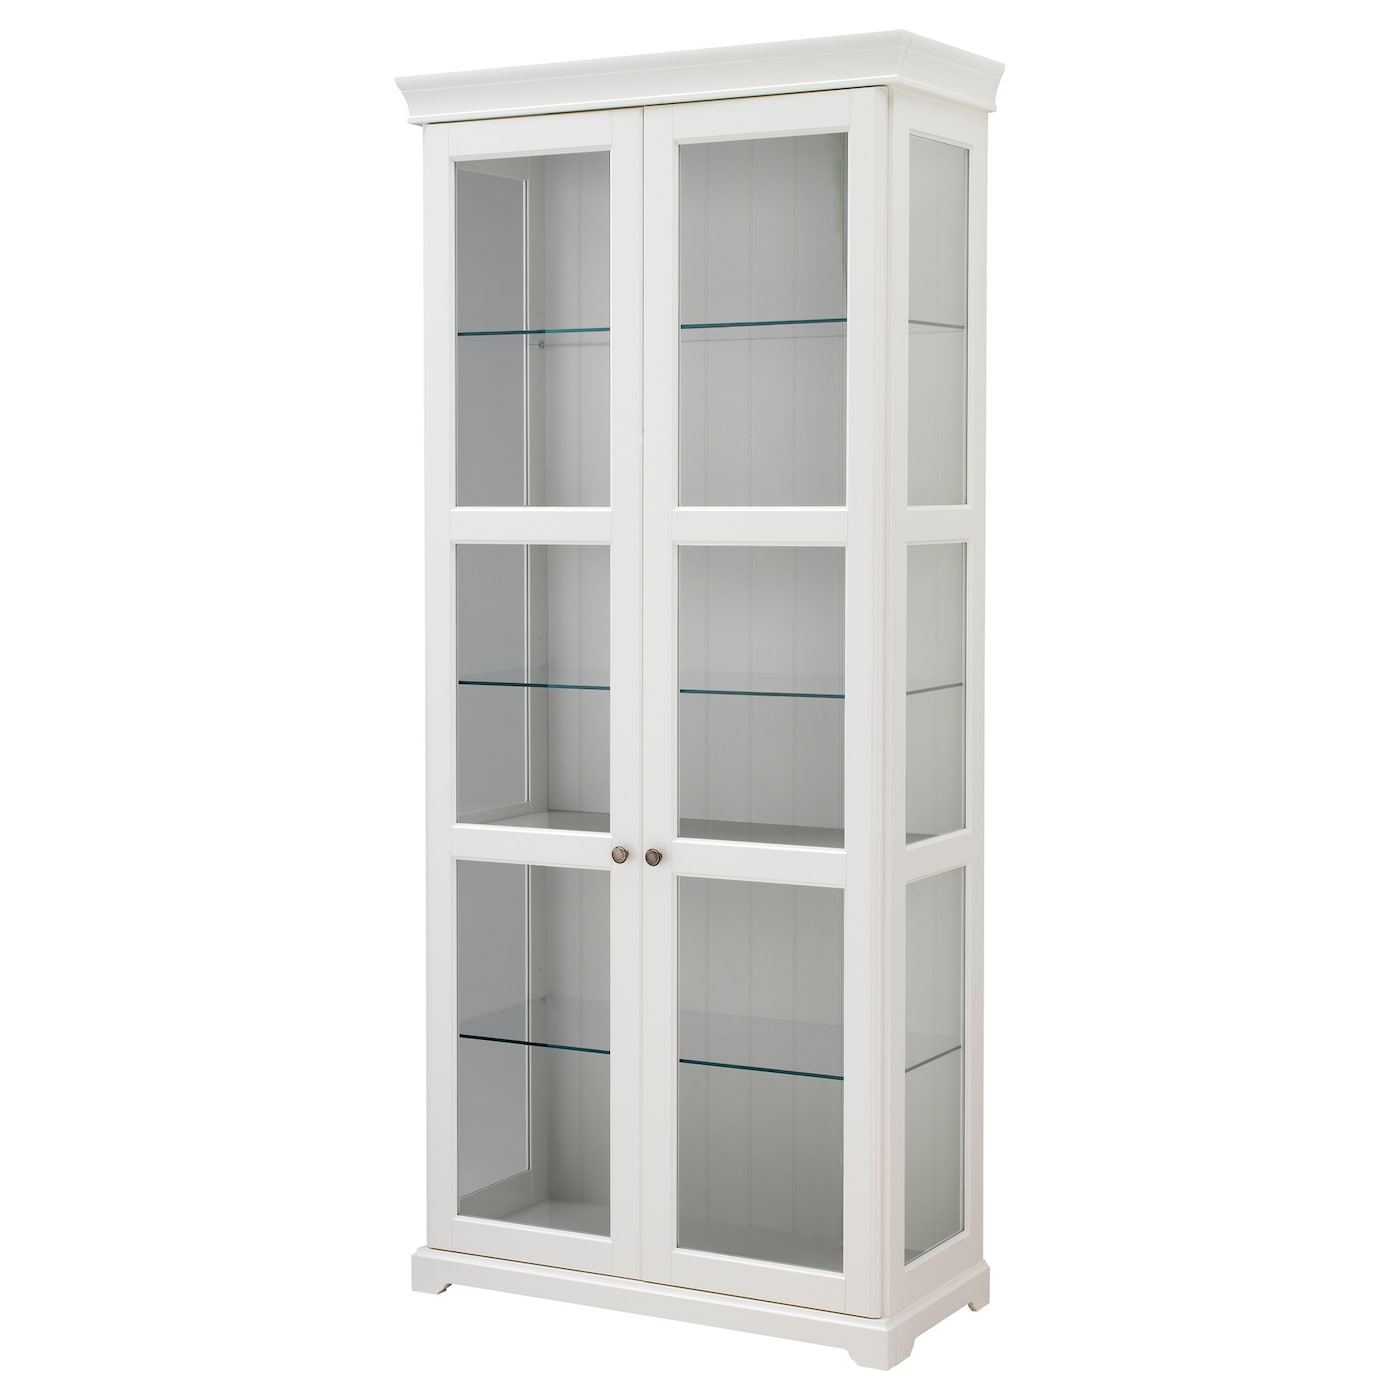 Display Cabinets Glass Display Cabinets Ikea # Buffet Salon Ikea